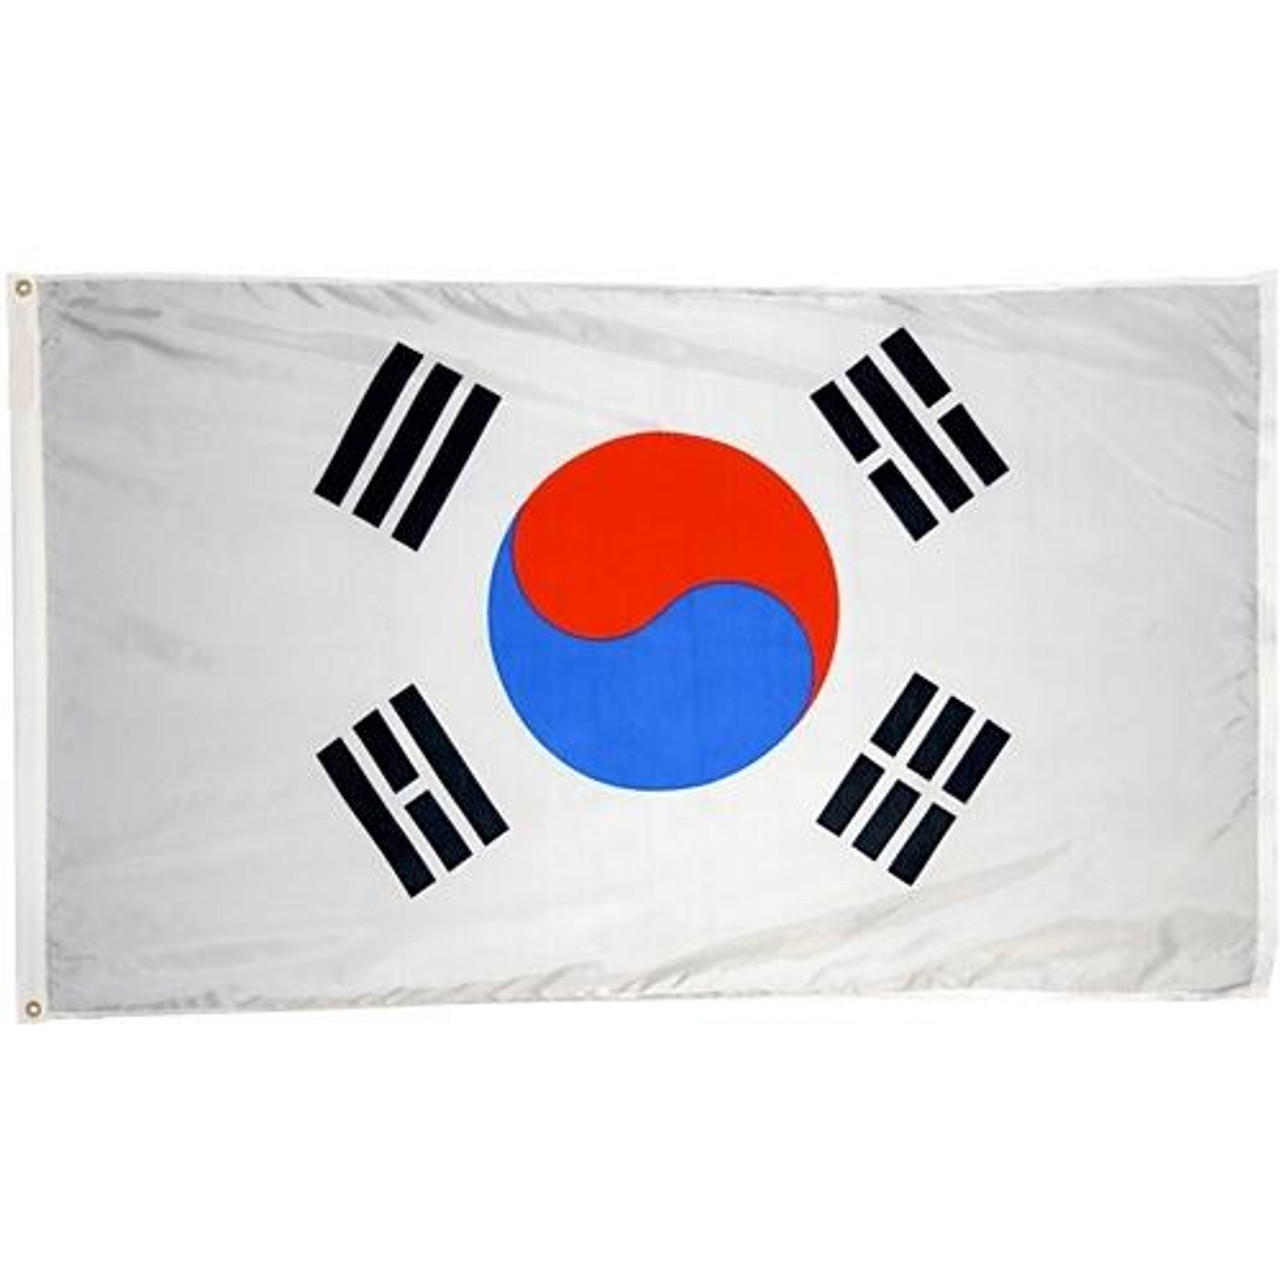 South Korea Flag. The flag of South Korea has three parts: a white rectangular background, a red and blue Taegeuk in its center, and four black trigrams, one in each corner.